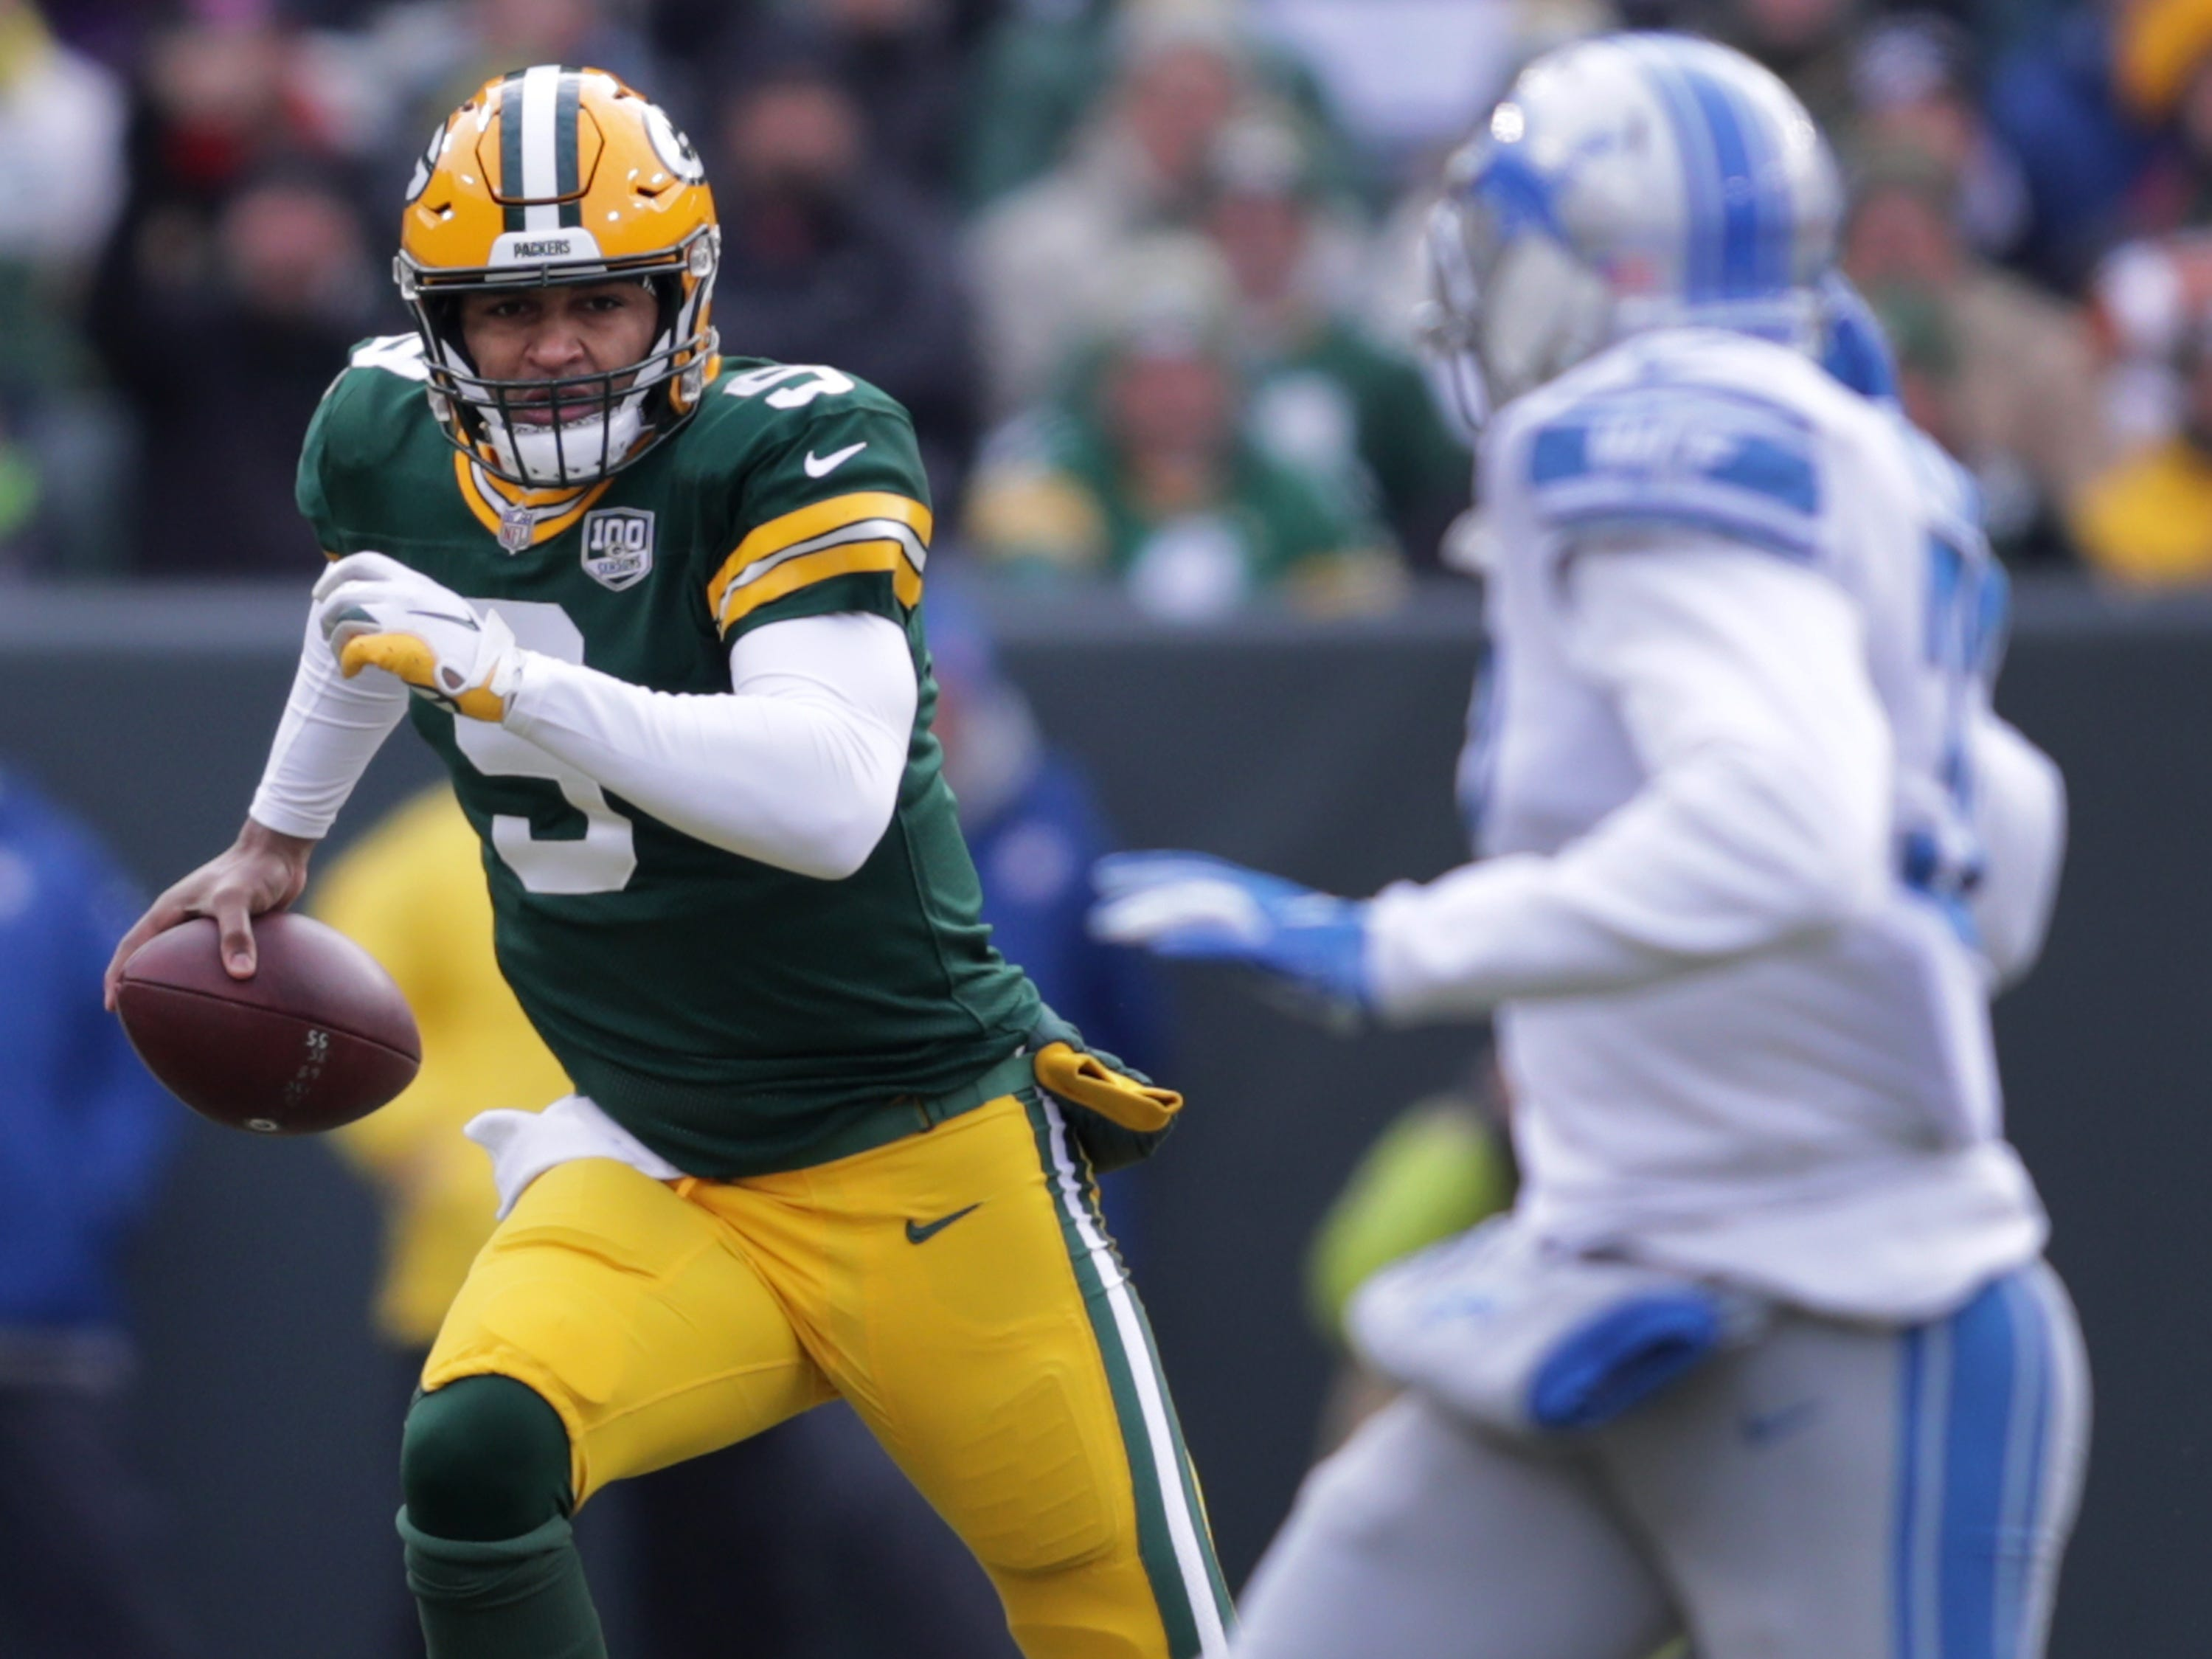 Green Bay Packers quarterback DeShone Kizer in the  second quarter against the Detroit Lions during their football game on Sunday, December 30, 2018, at Lambeau Field in Green Bay, Wis. Wm. Glasheen/USA TODAY NETWORK-Wisconsin.